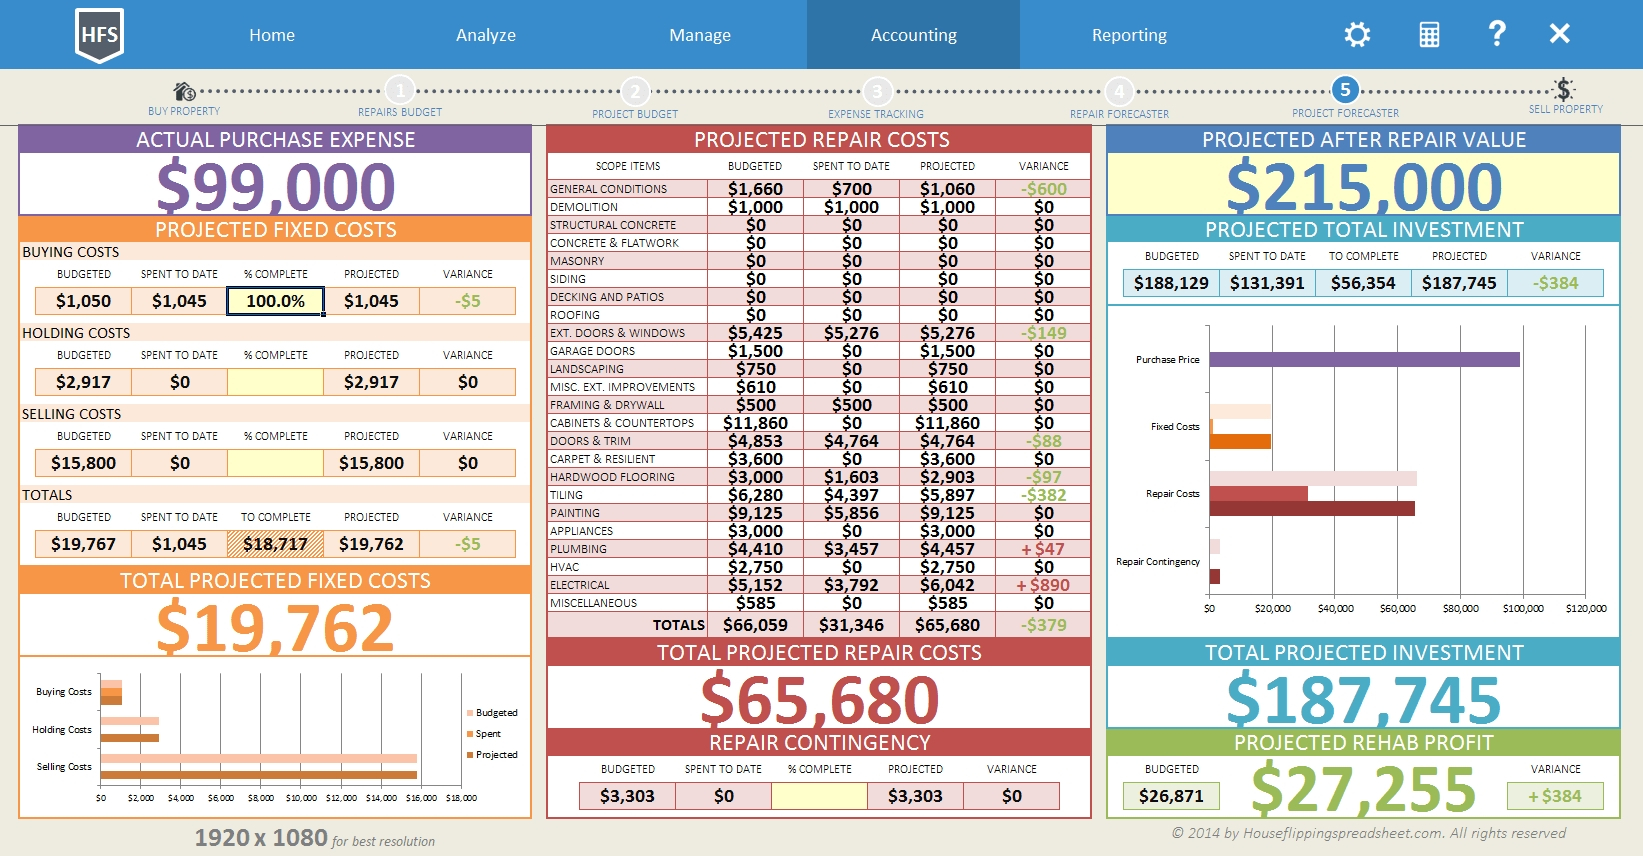 Free House Flipping Spreadsheet Template Intended For House Flipping Spreadsheet Template Free Download Coupon  Askoverflow